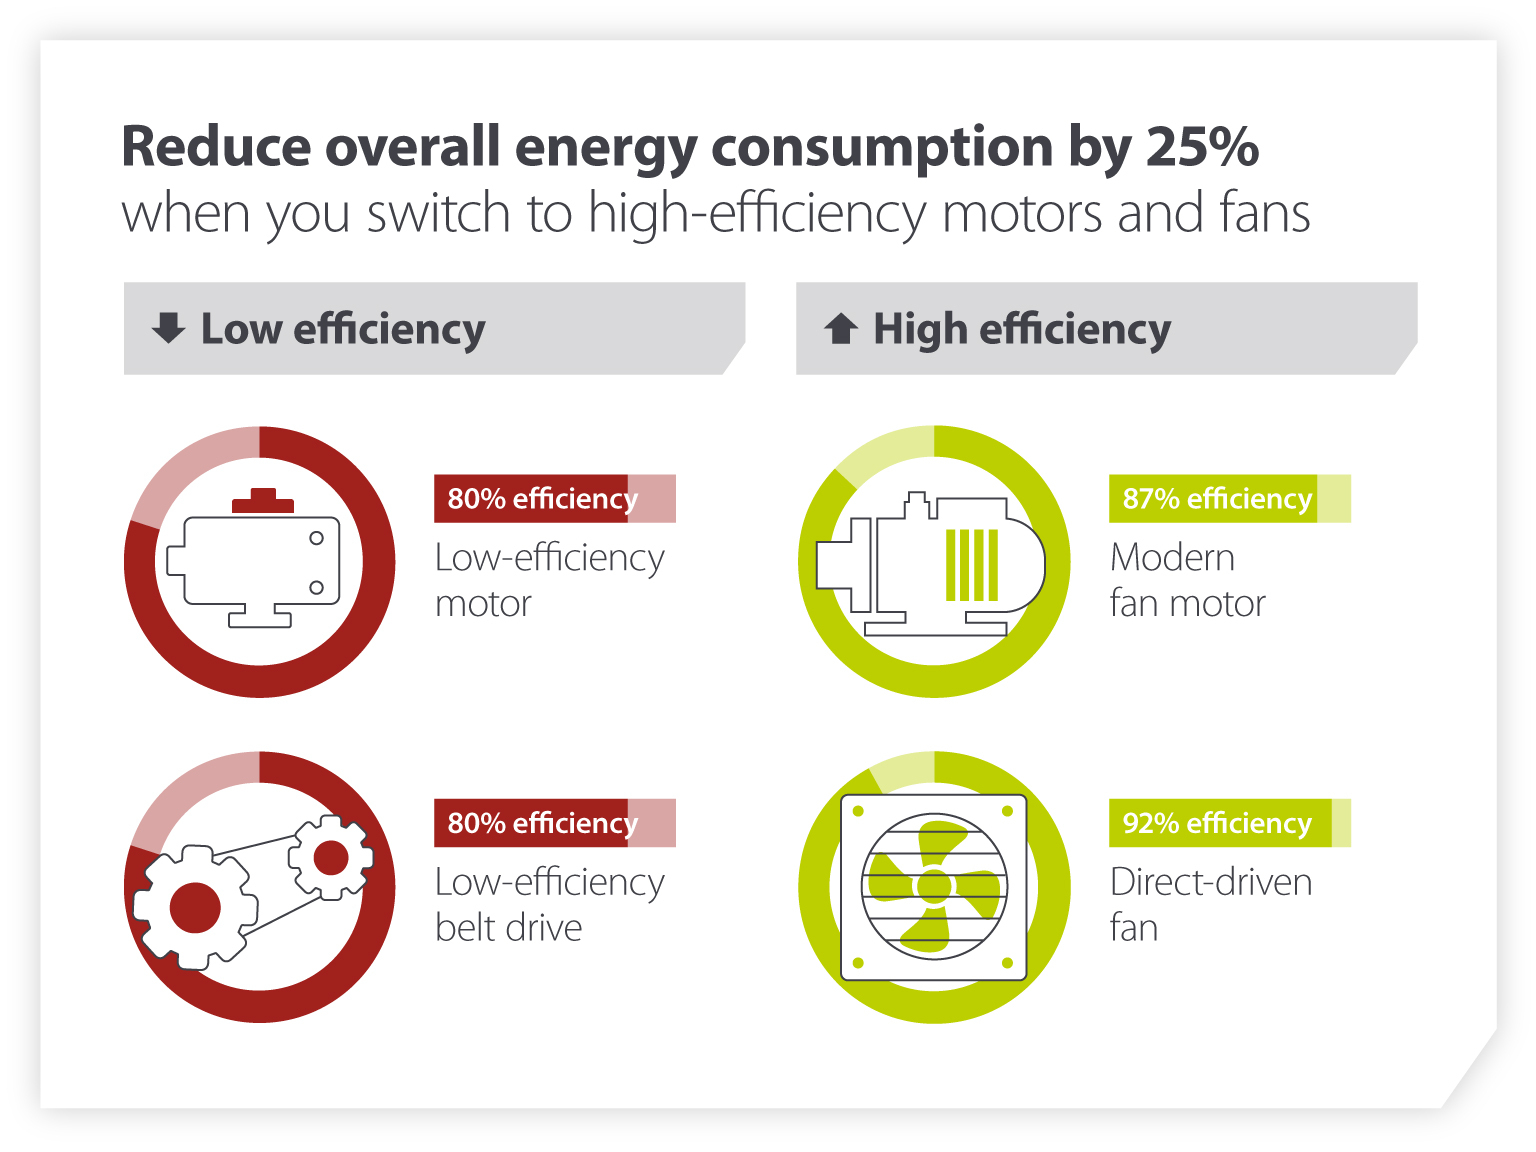 Reduce overall energy consumption by 25%